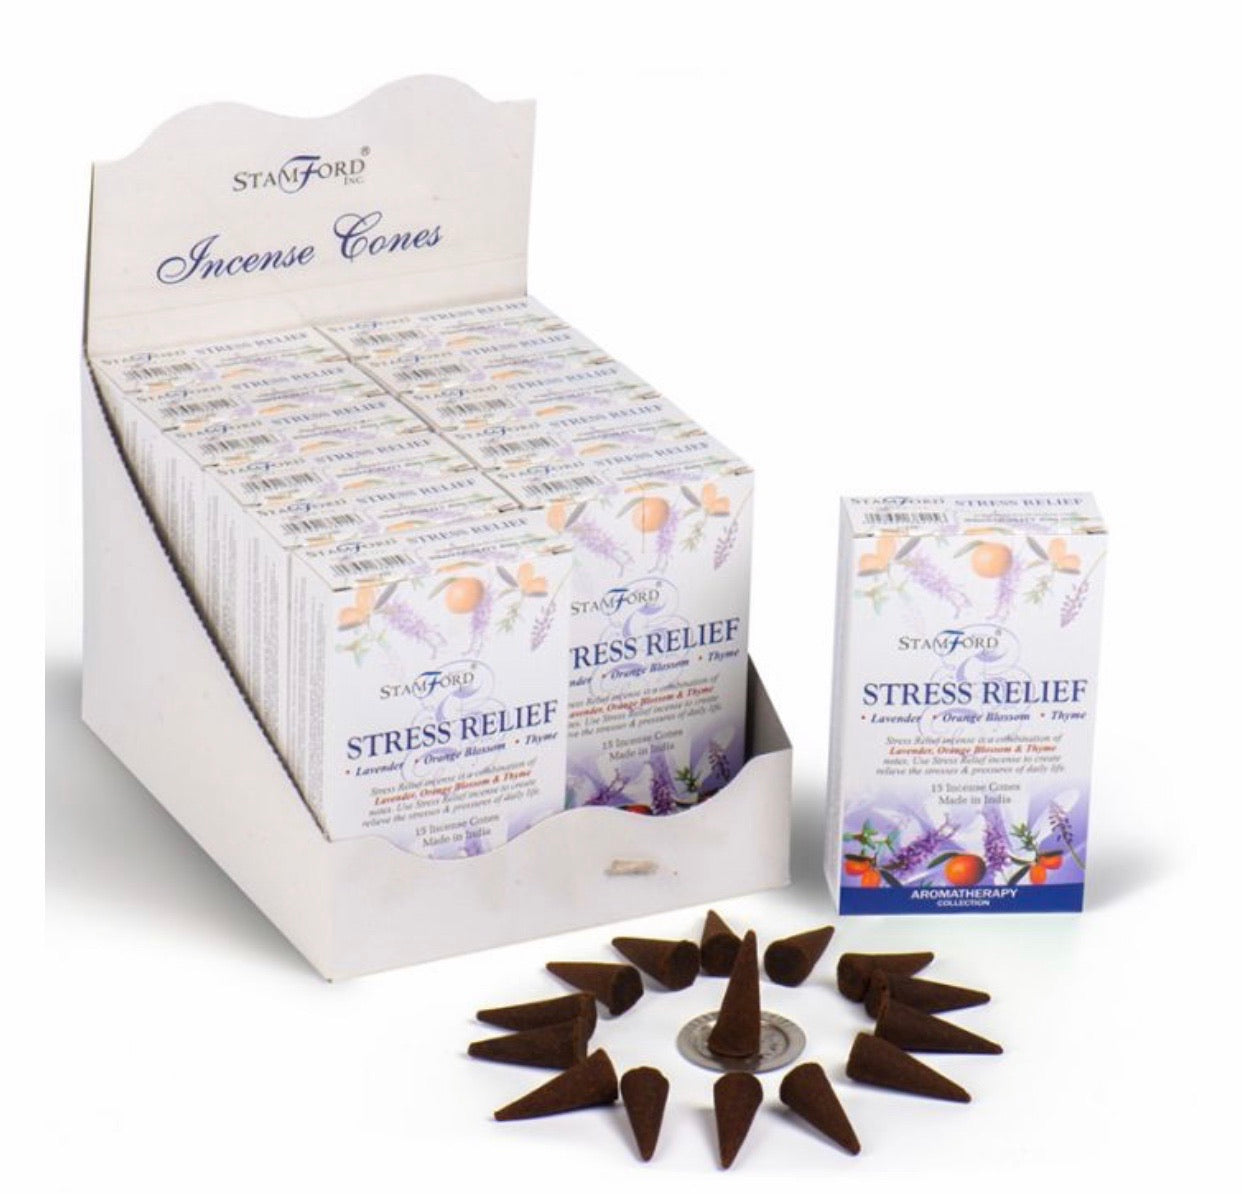 Stamford Incense Cones - Stress Relief